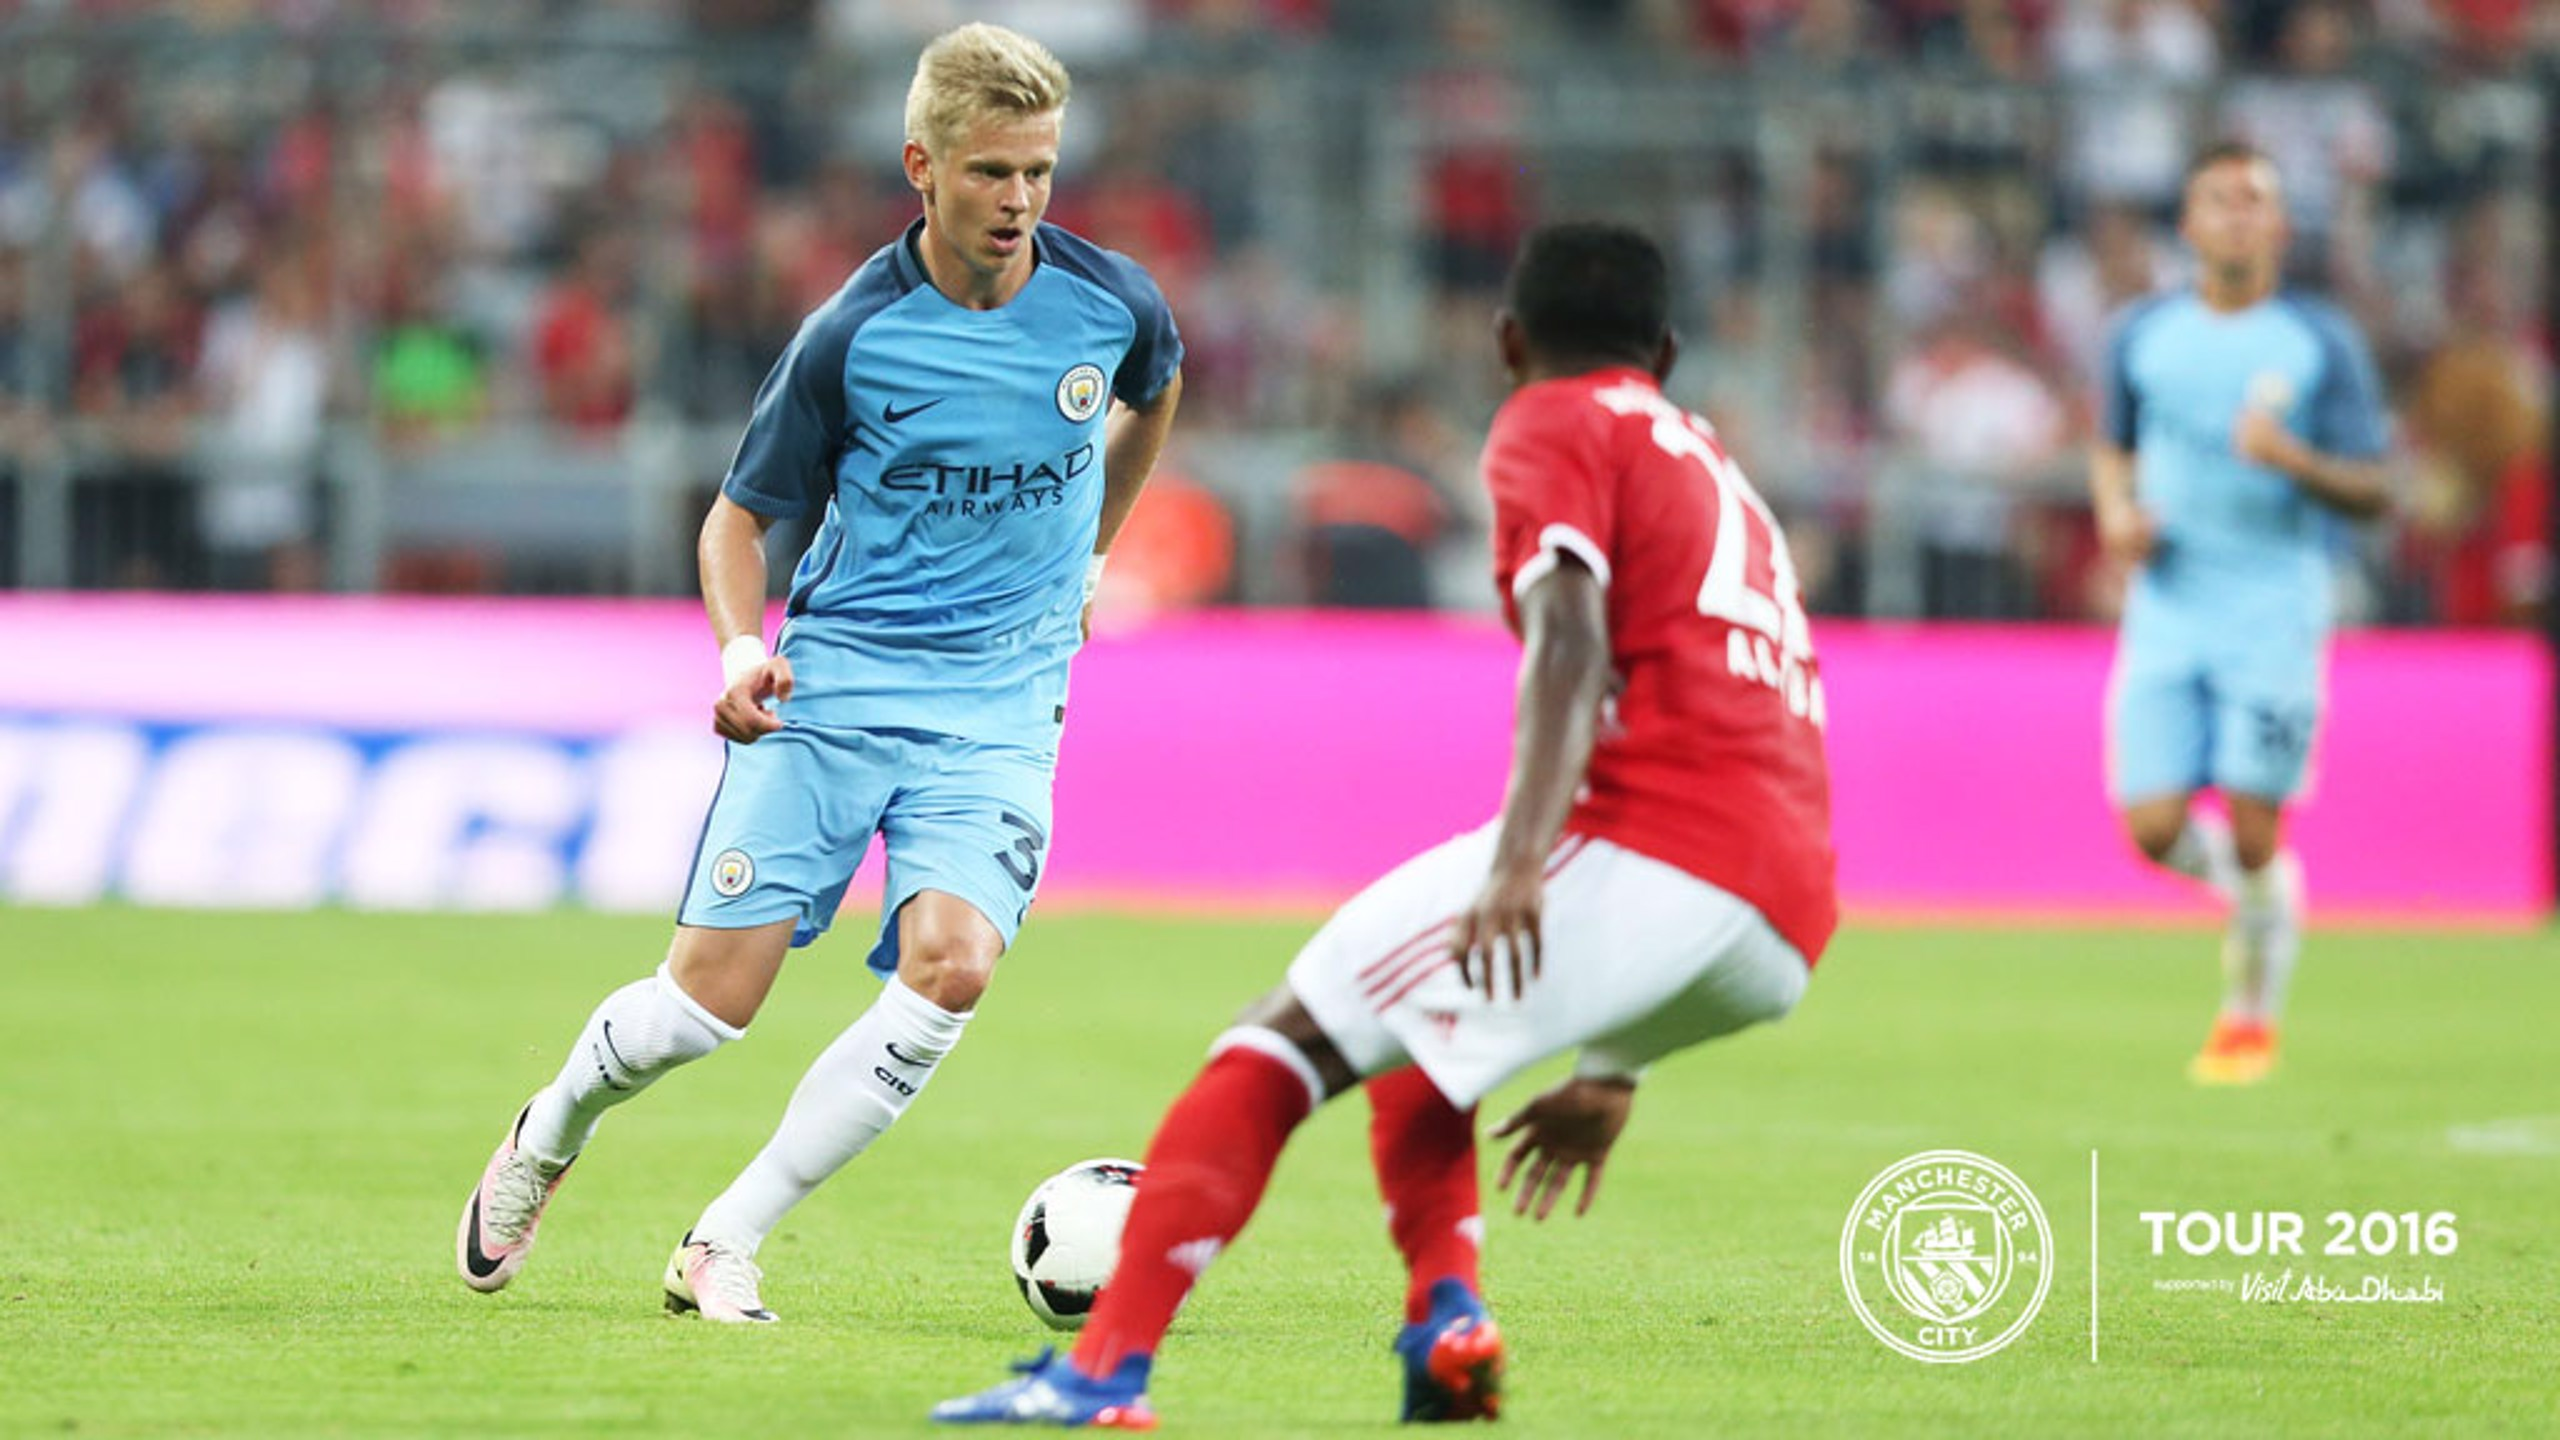 DEBUT: Zinchenko looked neat and tidy on his first City start.